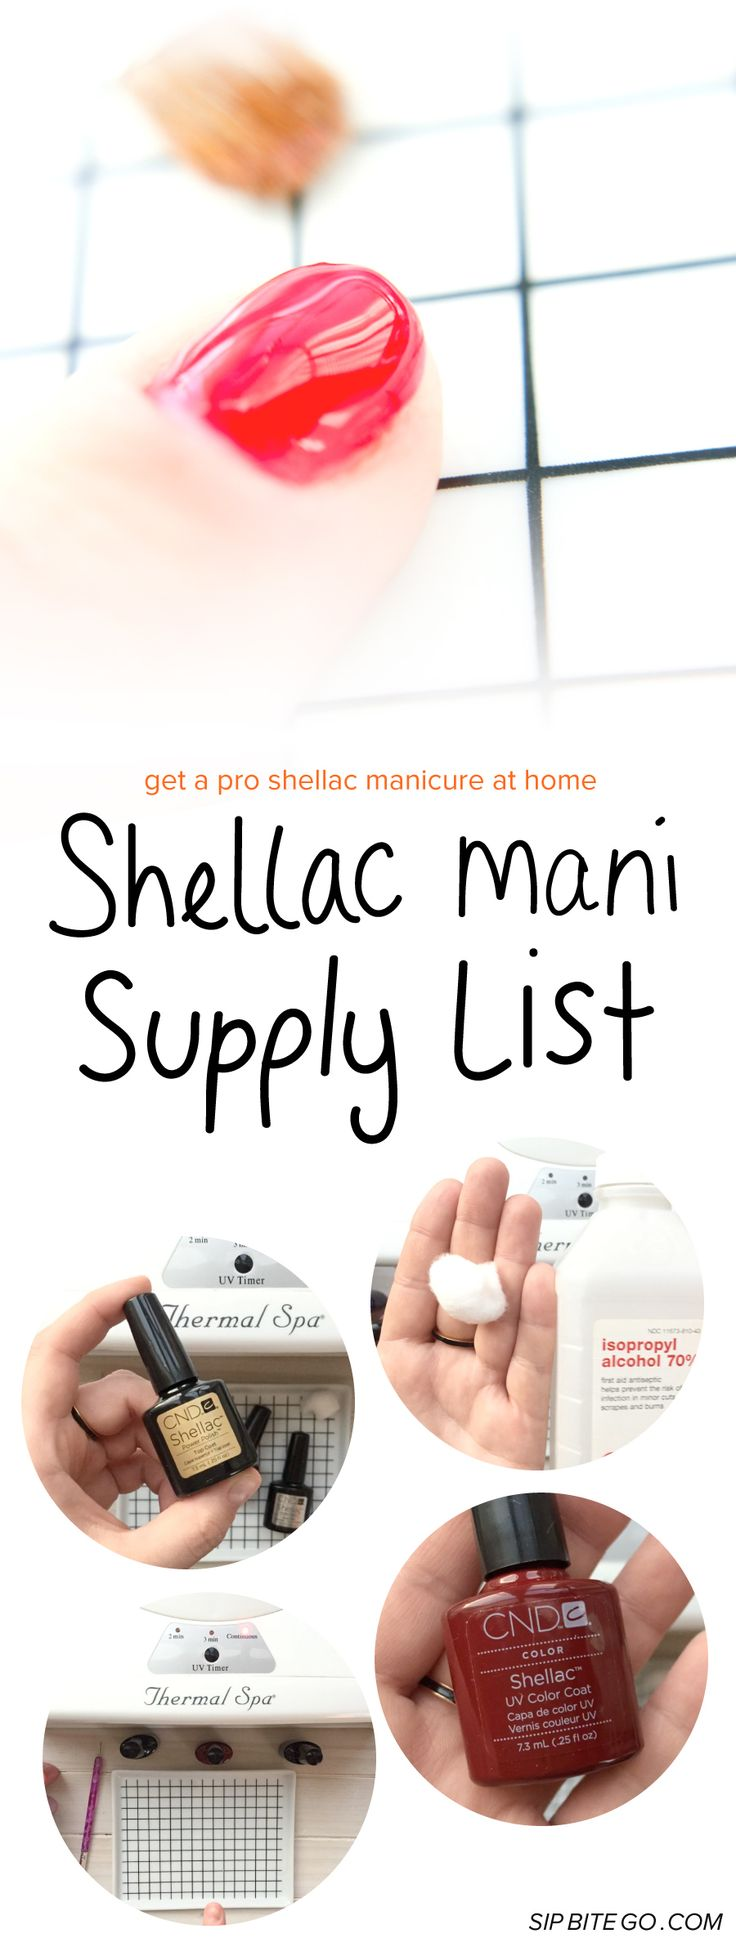 Do you love the look of beautiful nails? It's easy to get the professional shellac manicure look at home, here's the list of supplies. #diy #shellac #manicure #prettynails #diybeauty http://www.sipbitego.com/list-of-supplies-to-shellac-manicure-yourself/